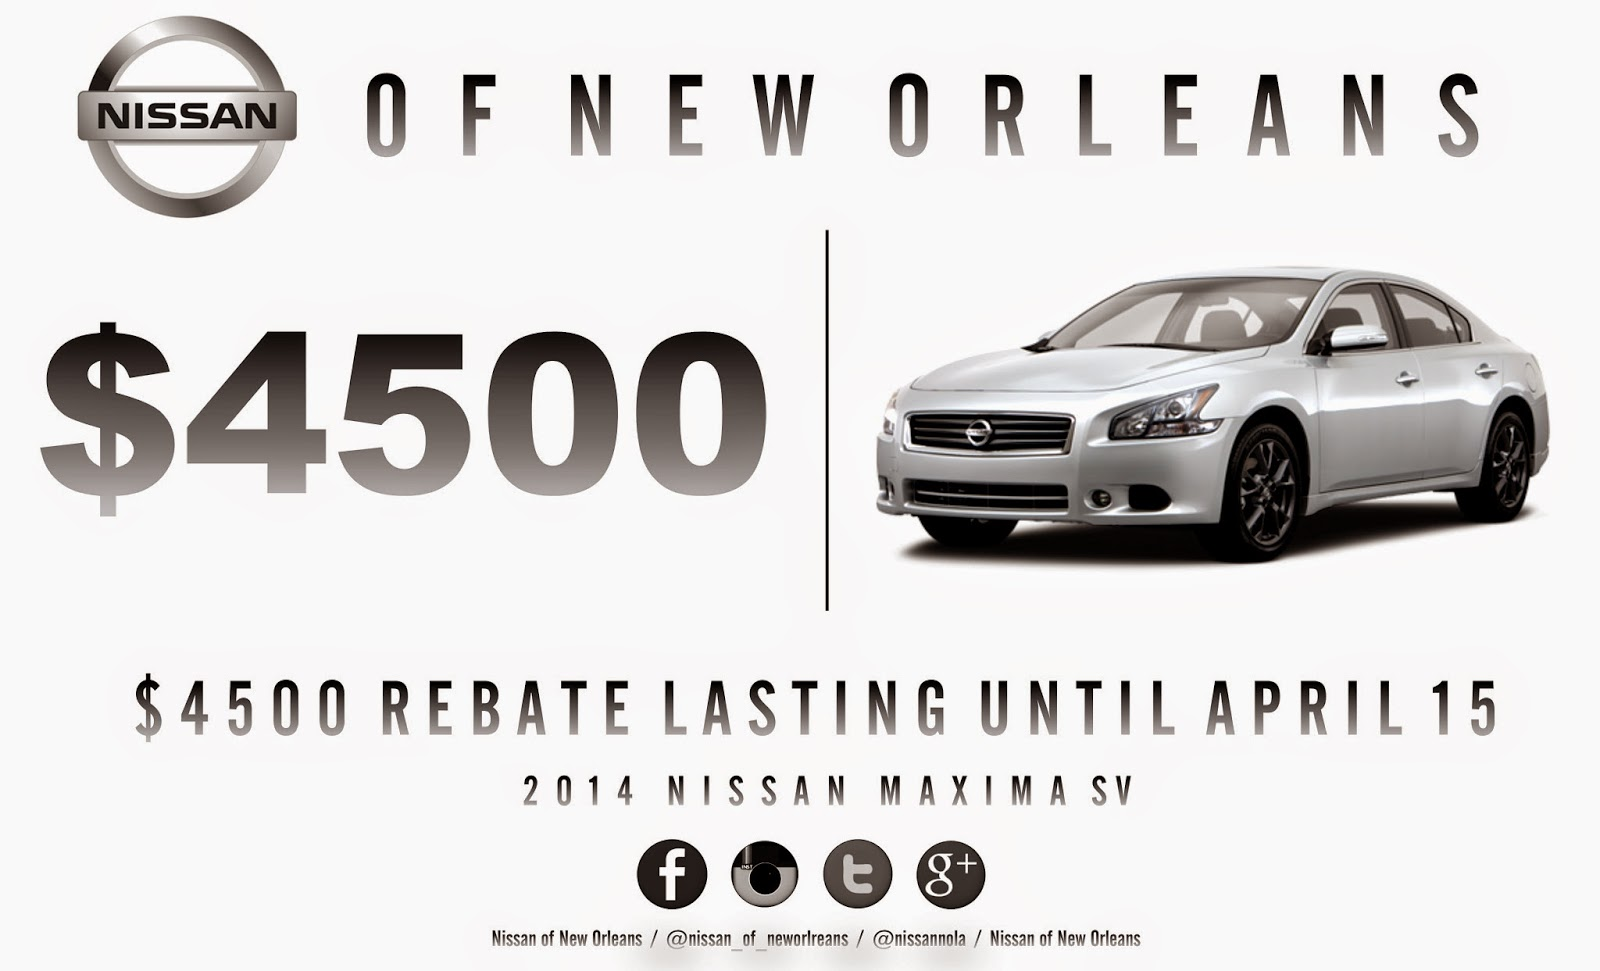 graphics unique elegant day puteauxgolf cards business fresh of nissan new orleans same